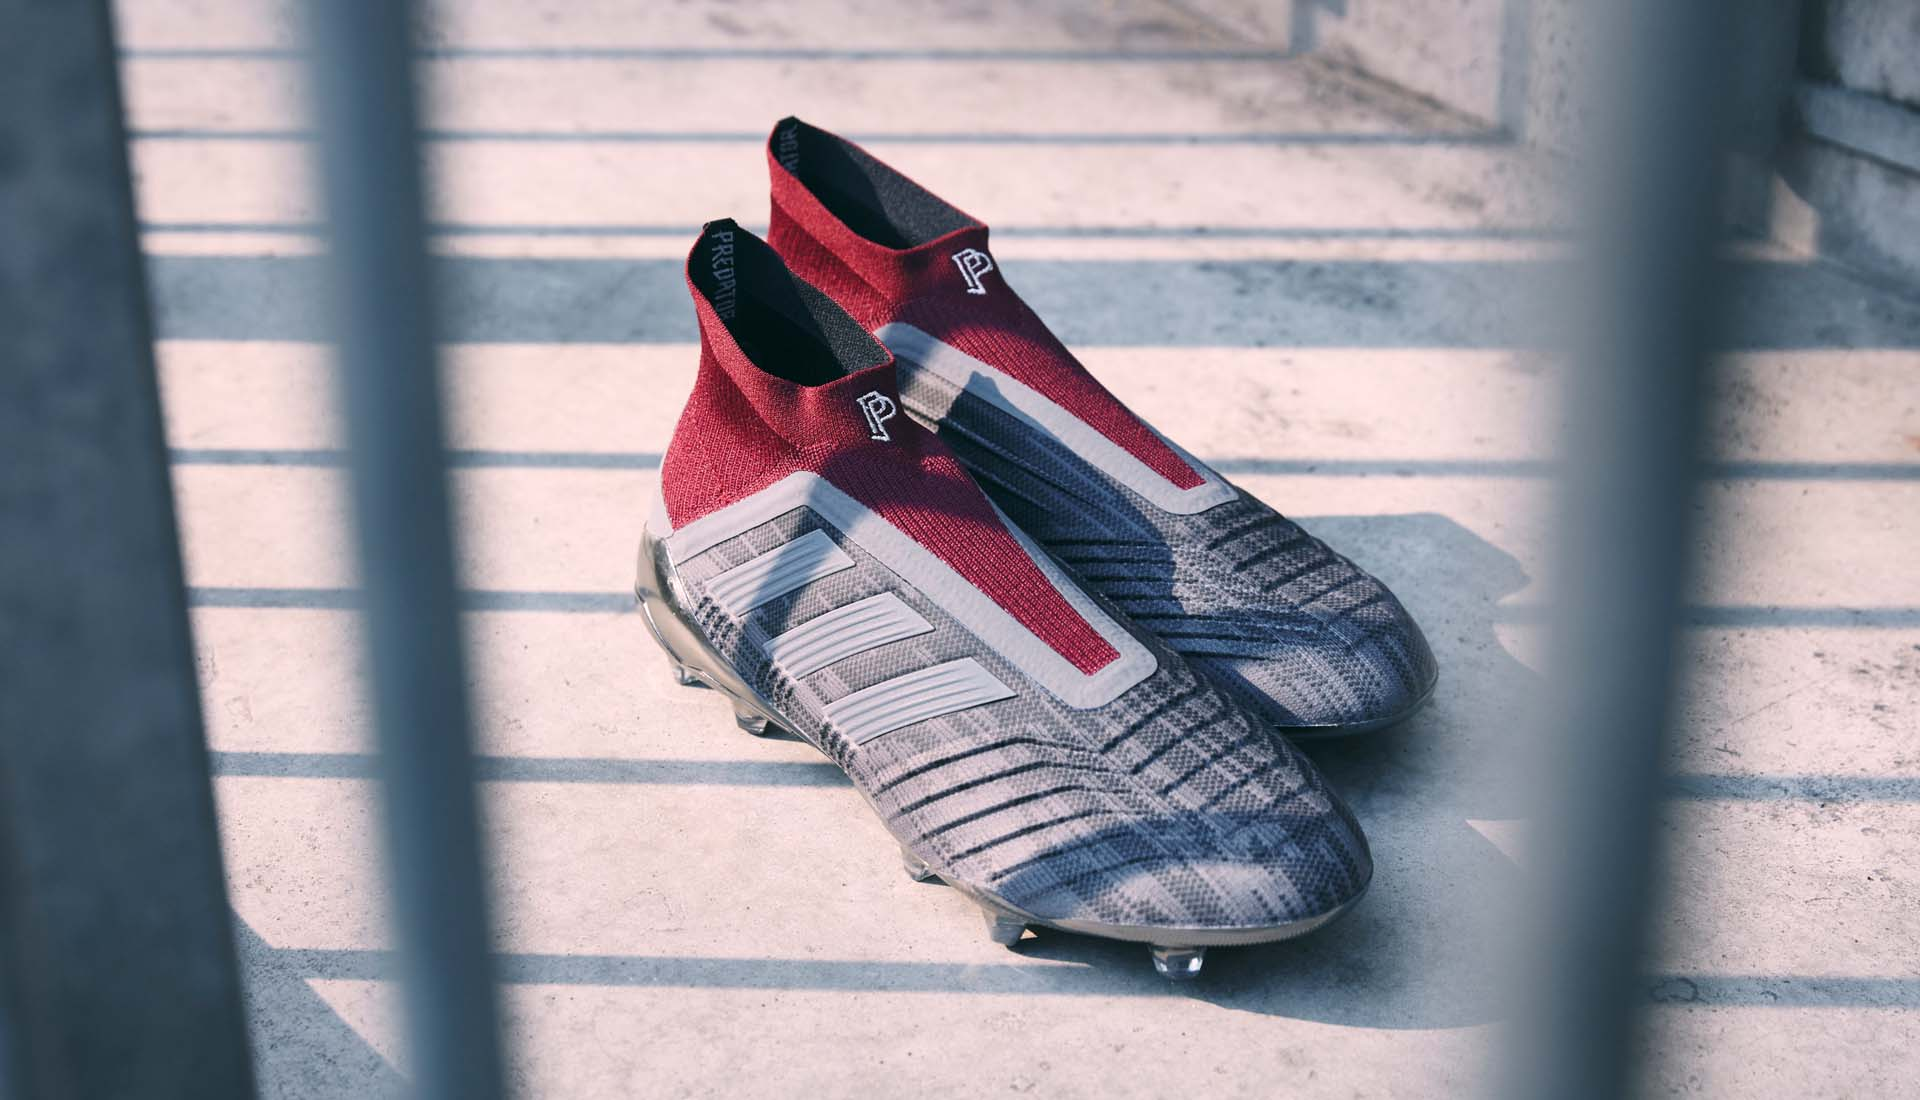 dc9f221fc8b adidas Launch The Paul Pogba Predator 18+ - SoccerBible